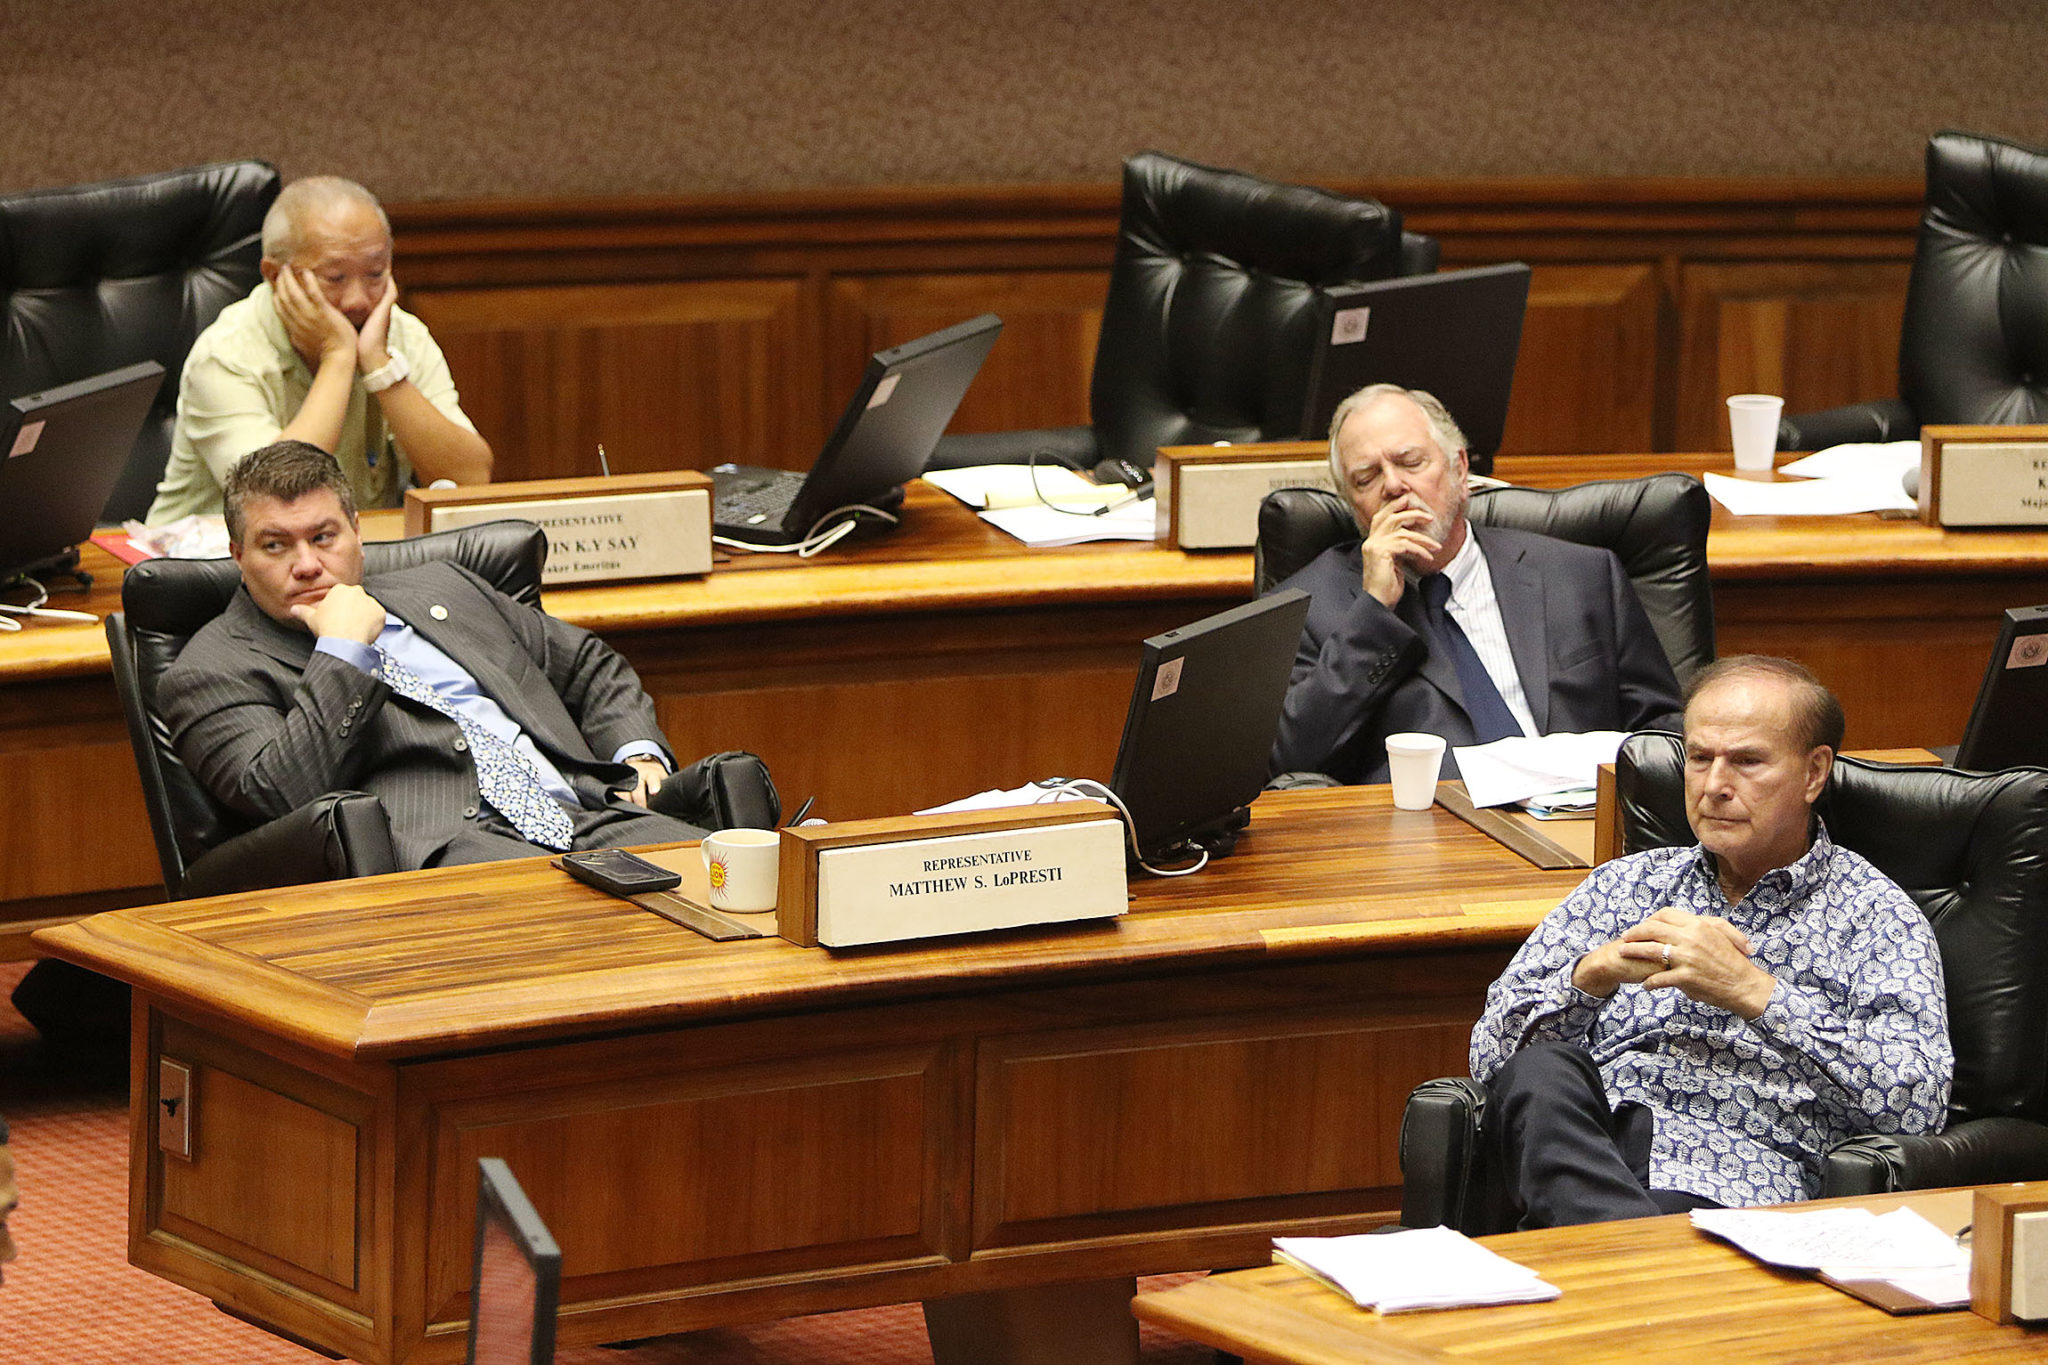 Representatives at 130pm listening to colleagues on the last day of special session.